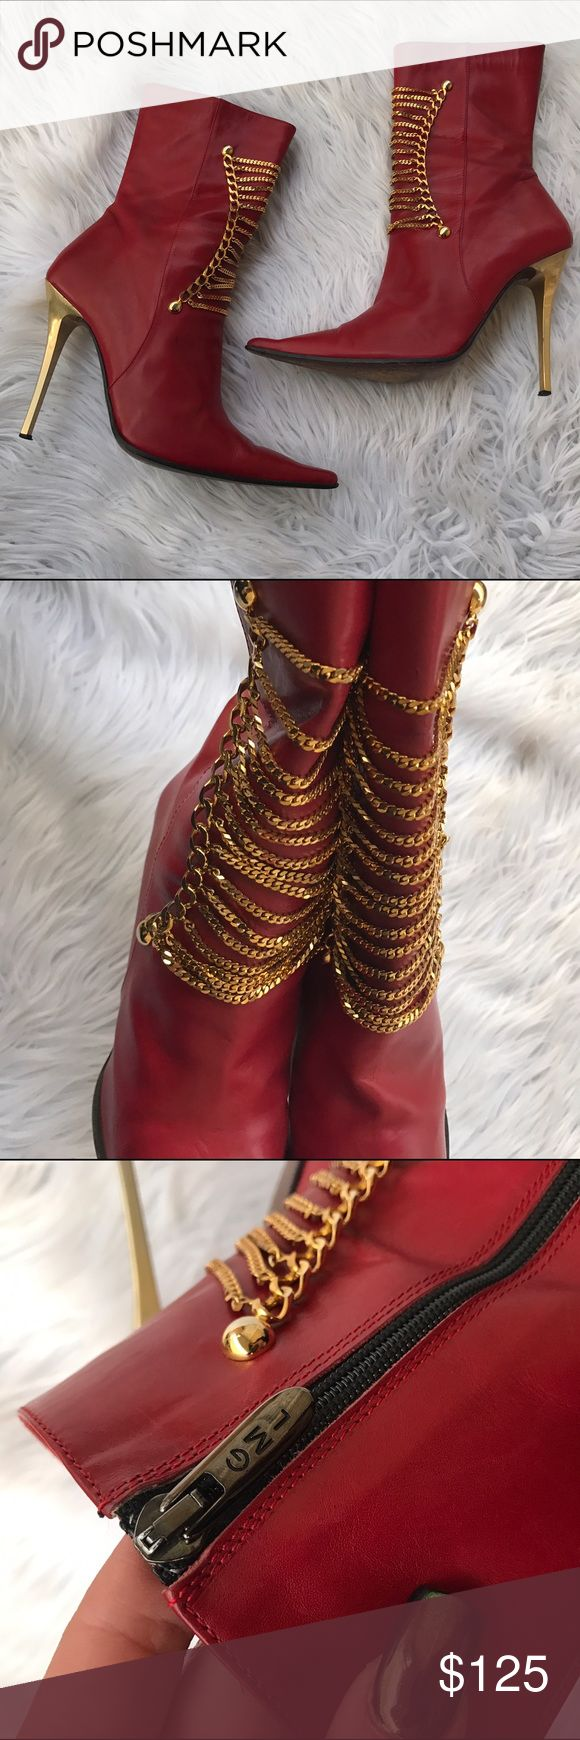 GIANMARCO LORENZI SZ 7 RED LEATHER BOOTS SHOES 100% authentic ❤️ CUTE chains on these boots Gianmarco Lorenzi Shoes